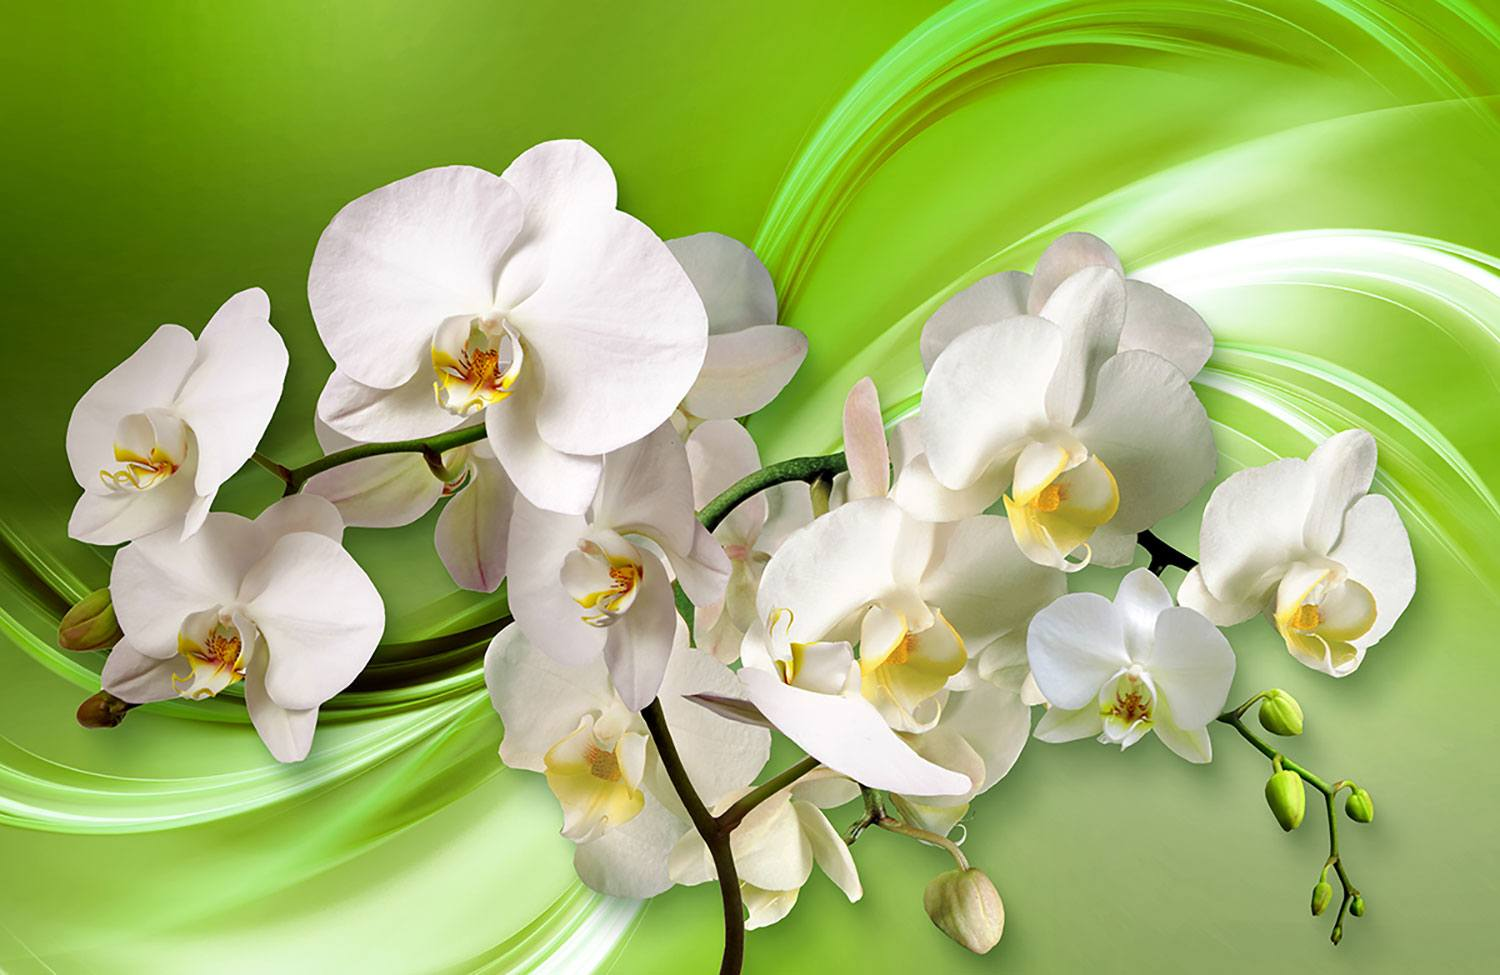 Wall Murals: Orchids on green